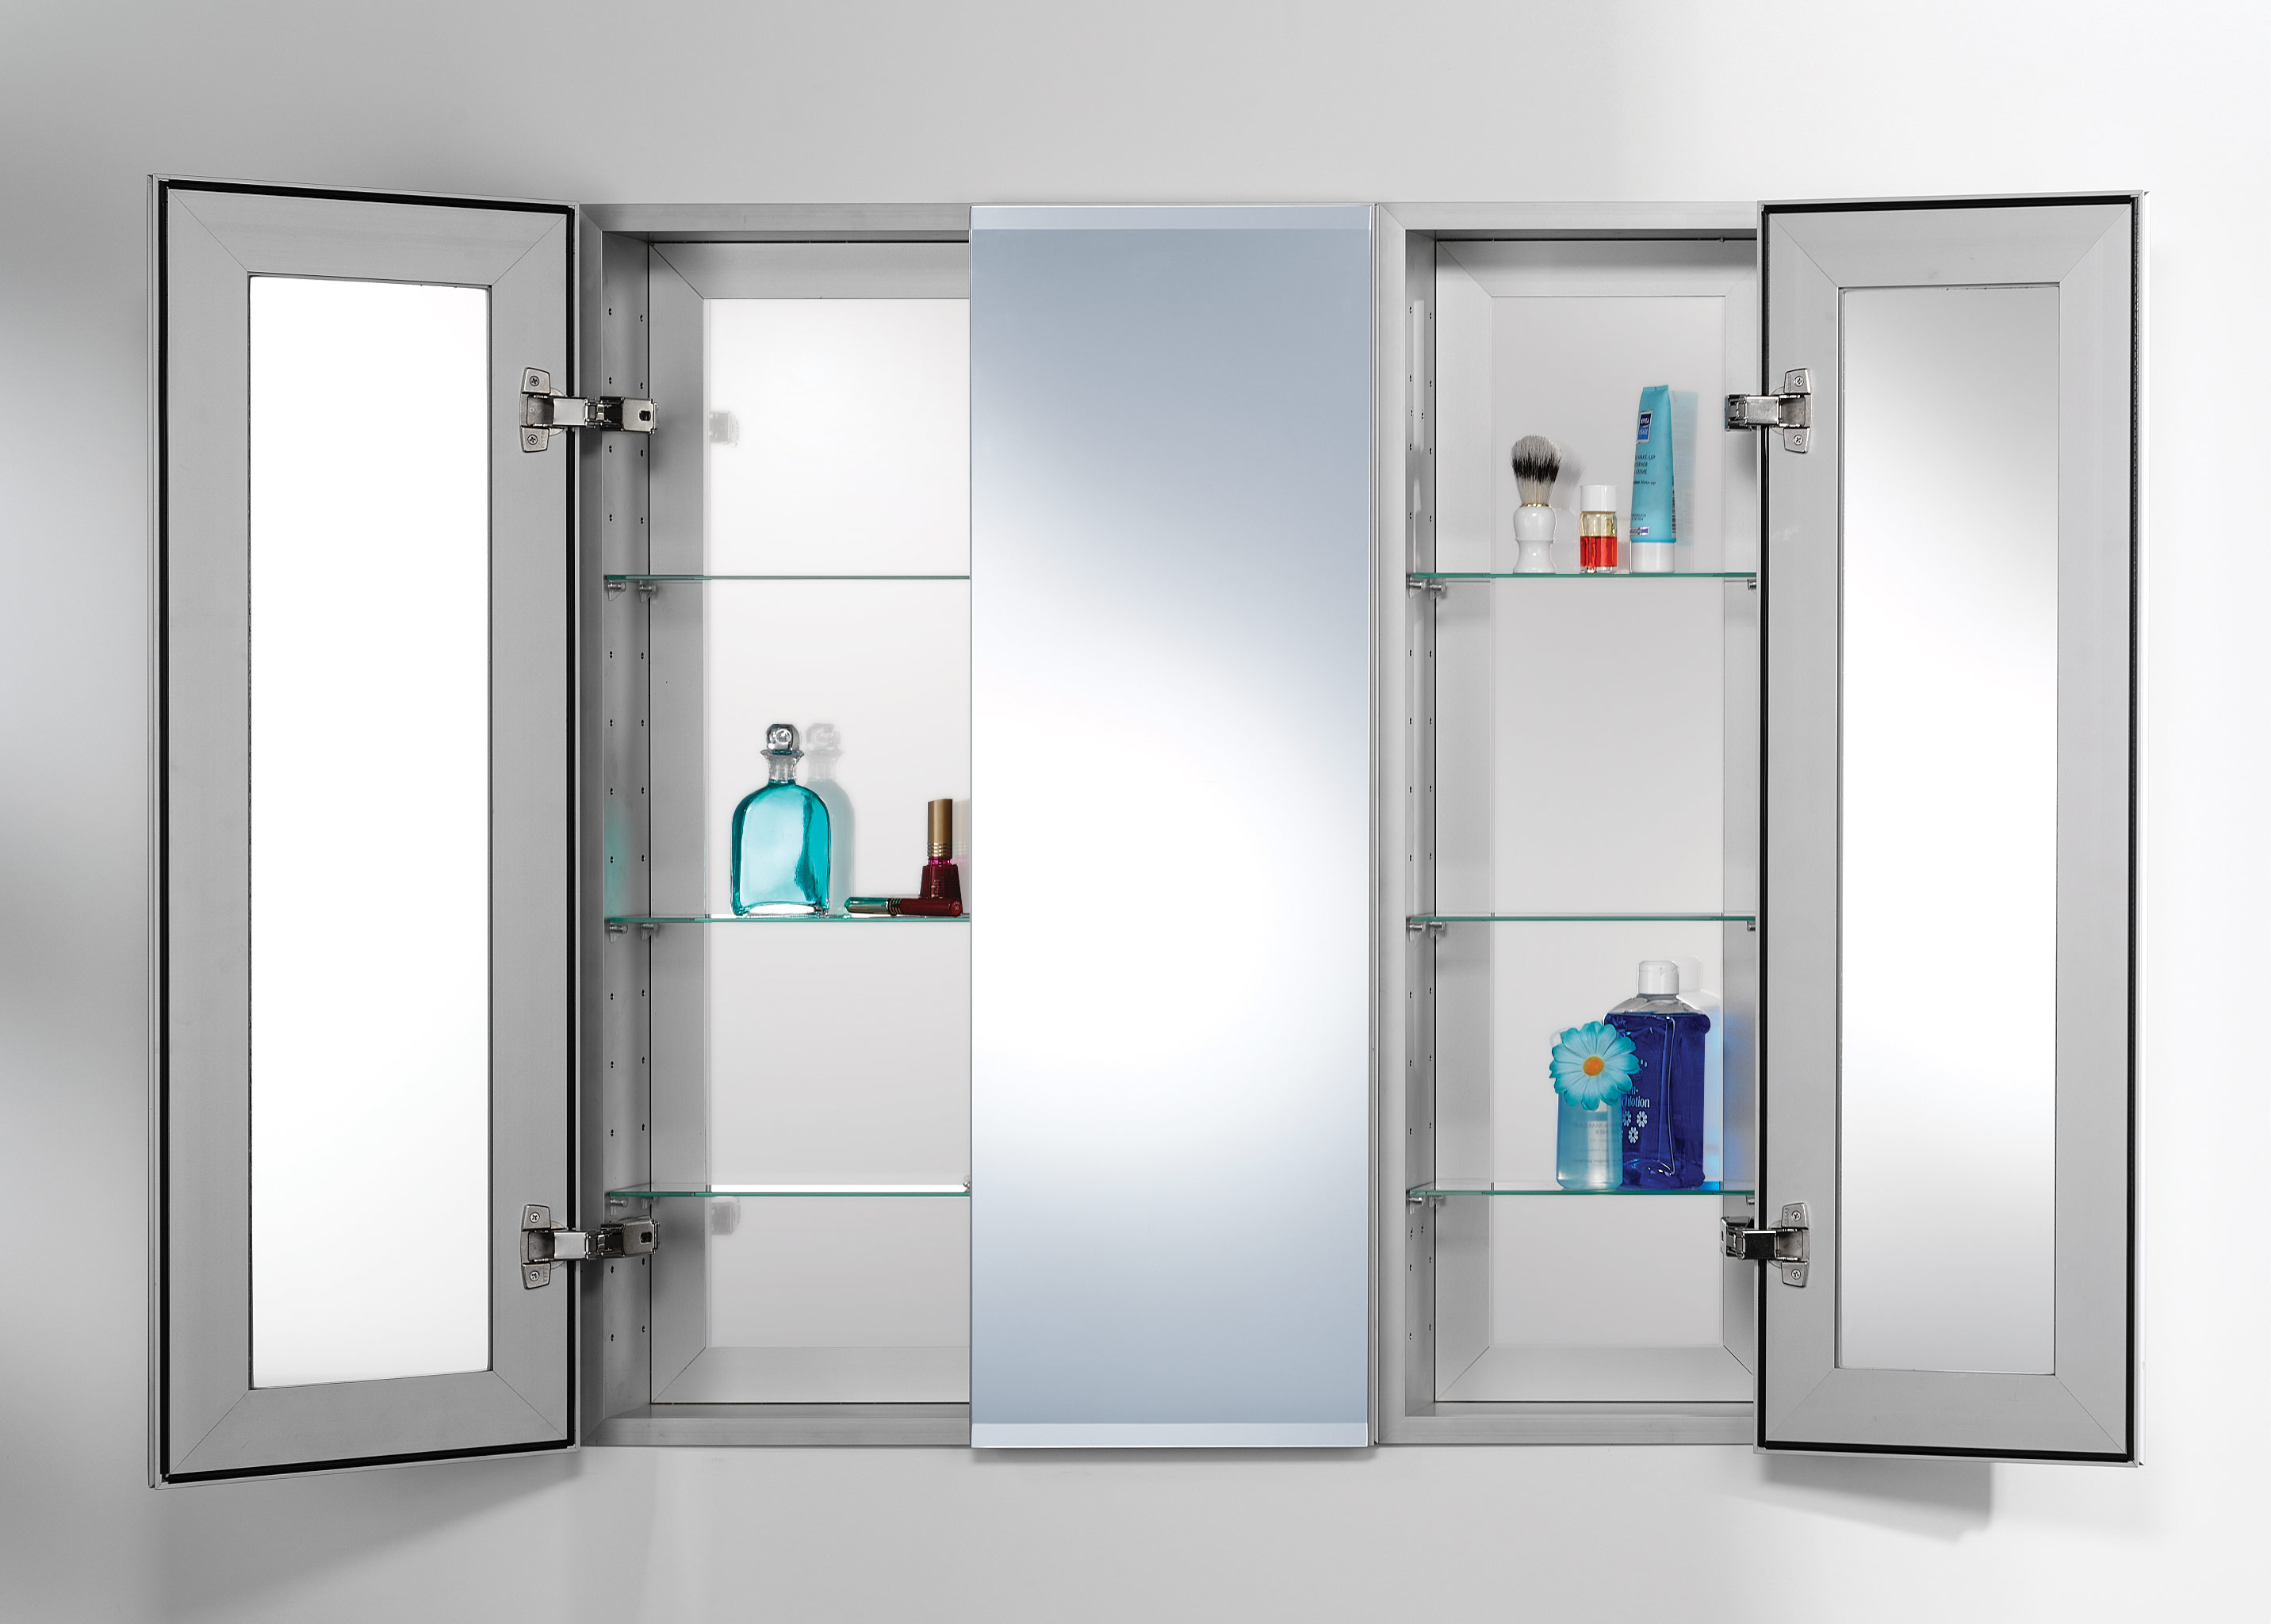 Bathroom Medicine Cabinets Recessed bathroom medicine cabinets – with lights, recessed, mirrored